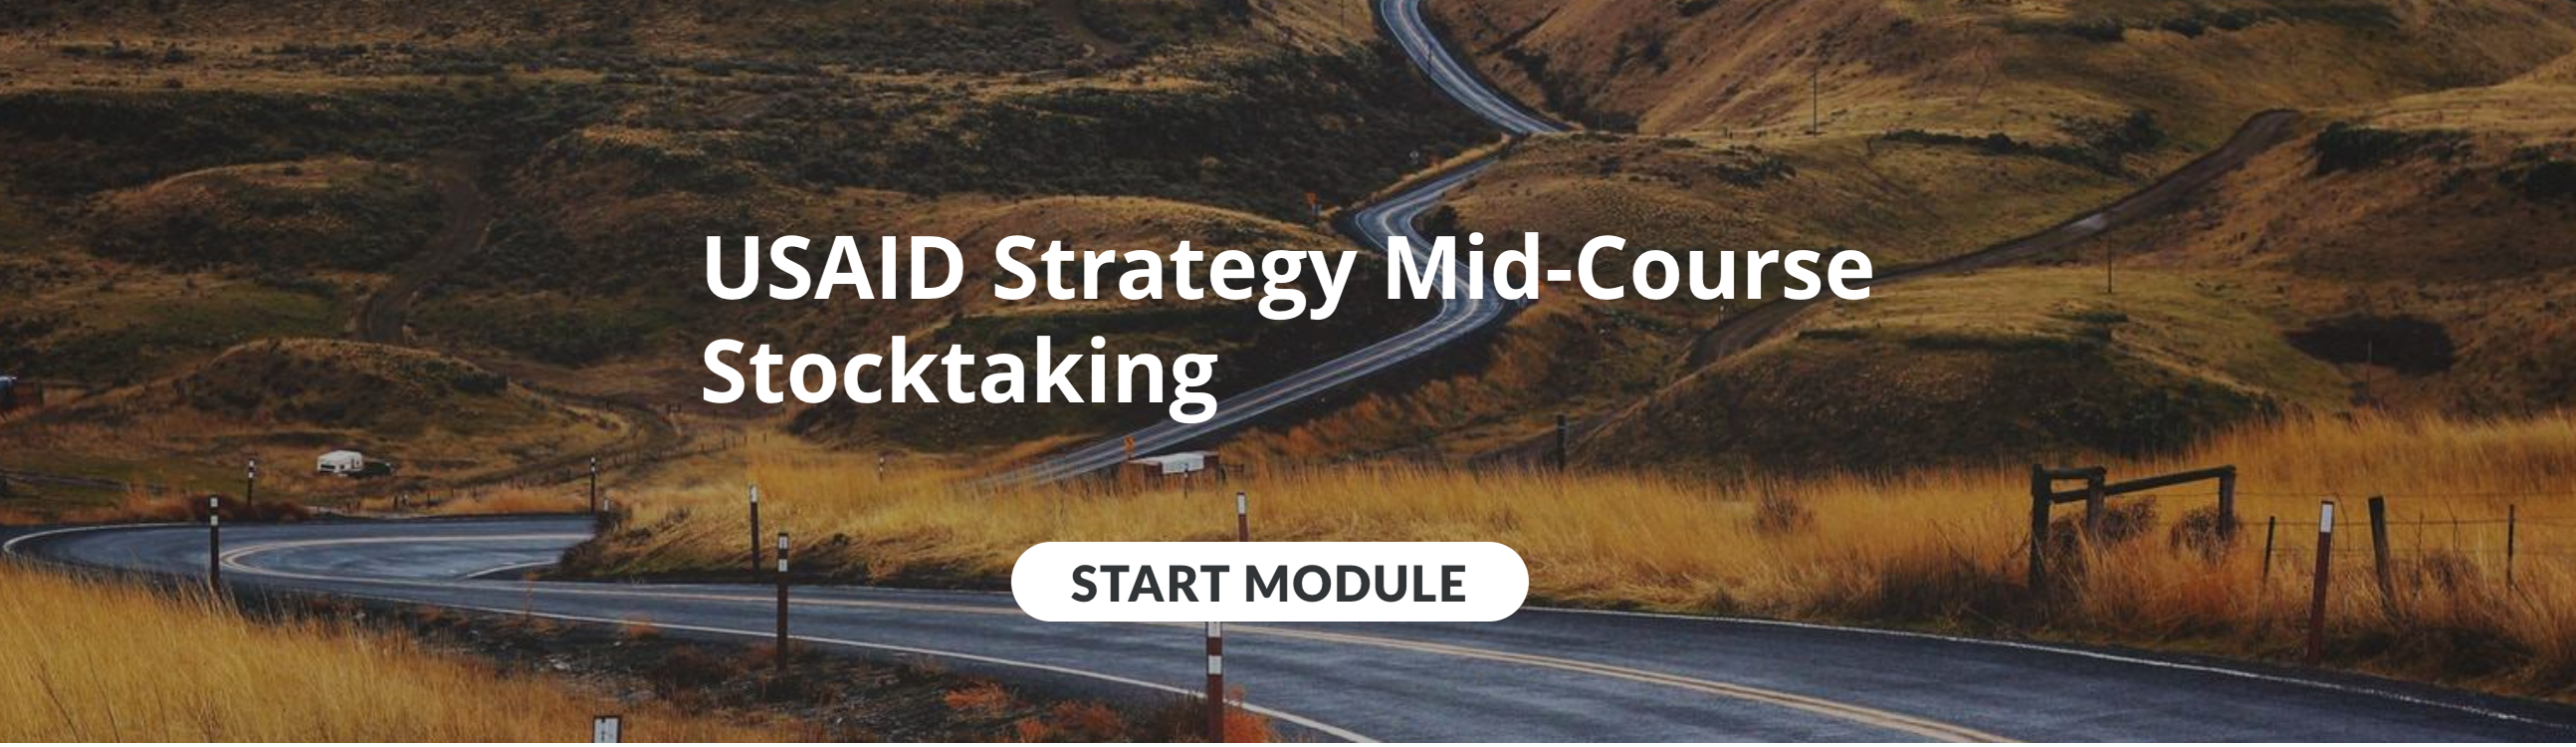 Image with link to USAID Strategy Mid-Course Stocktaking Module